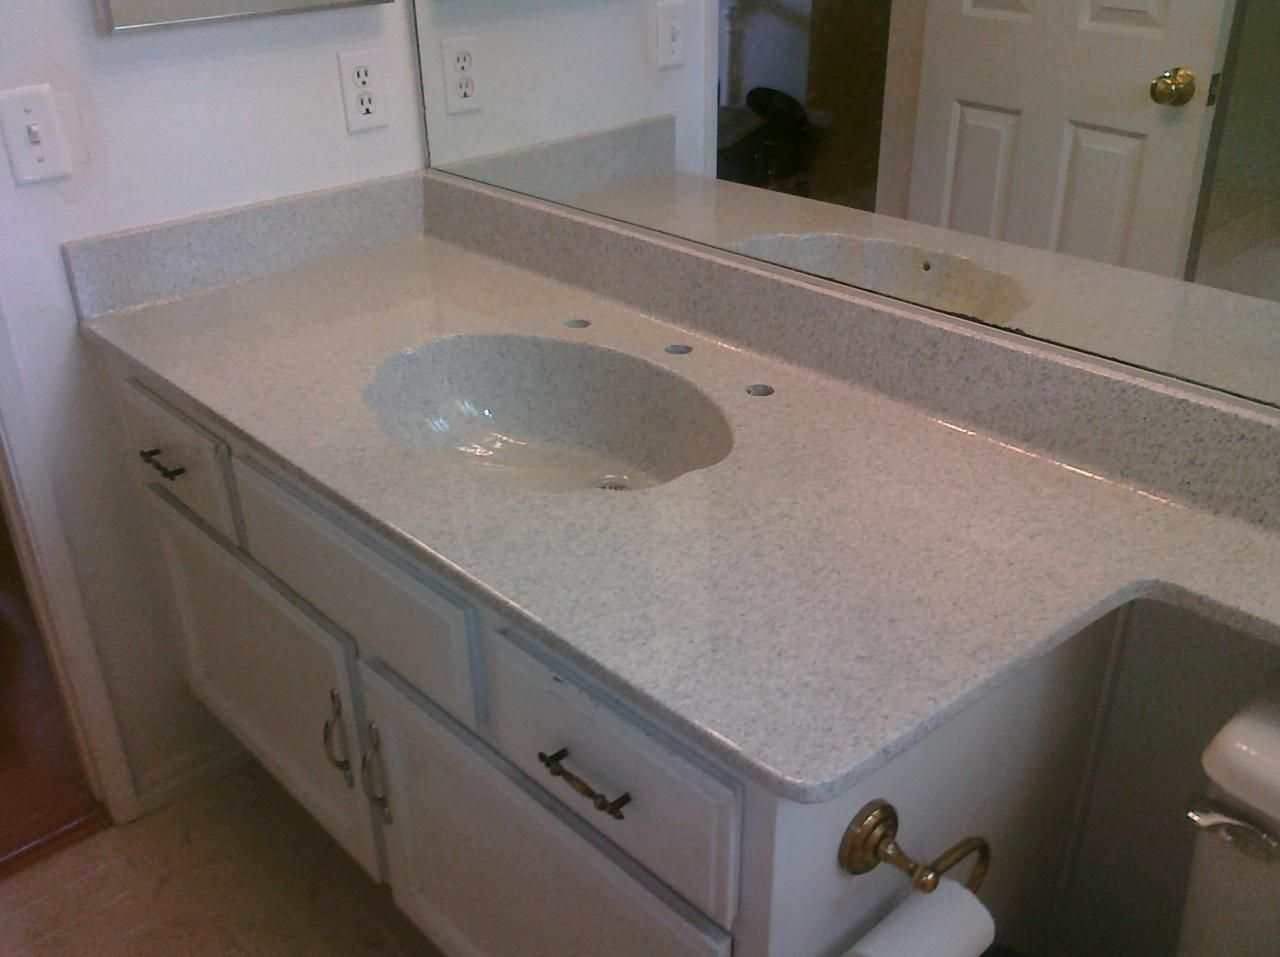 Marble Basin Countertop Pkb Reglazing Cultured Marble Countertop And Sink Combo